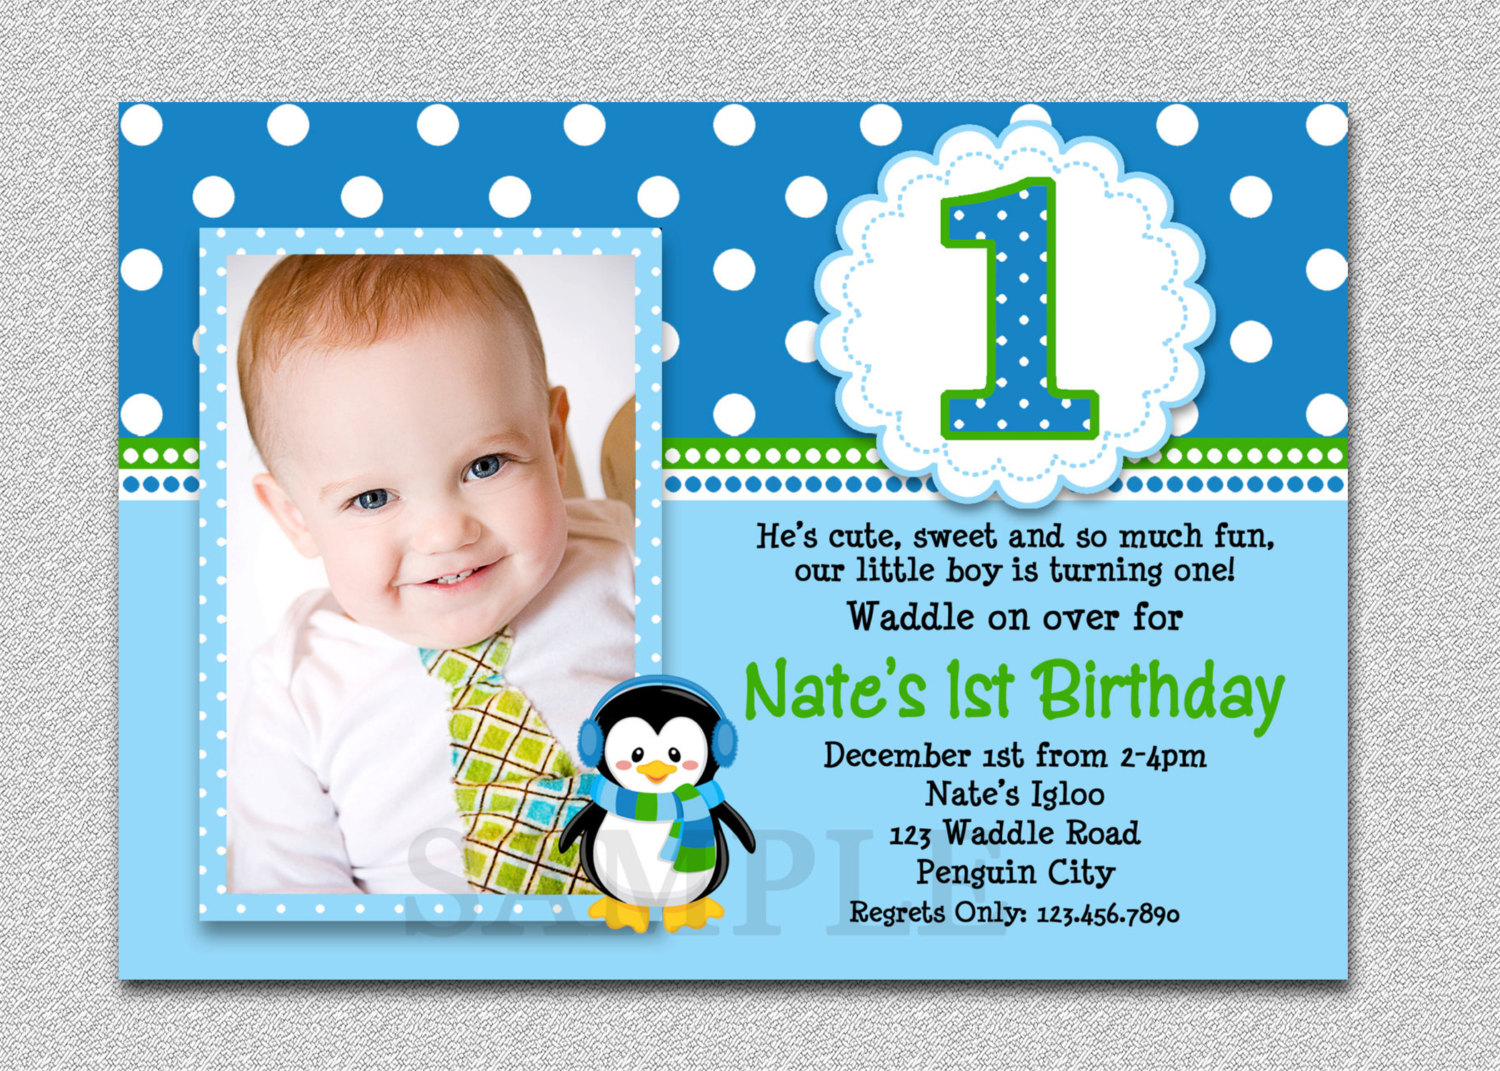 1st birthday invitation card design ; Amazing-1St-Birthday-Party-Invitations-To-Design-Birthday-Invitation-Cards